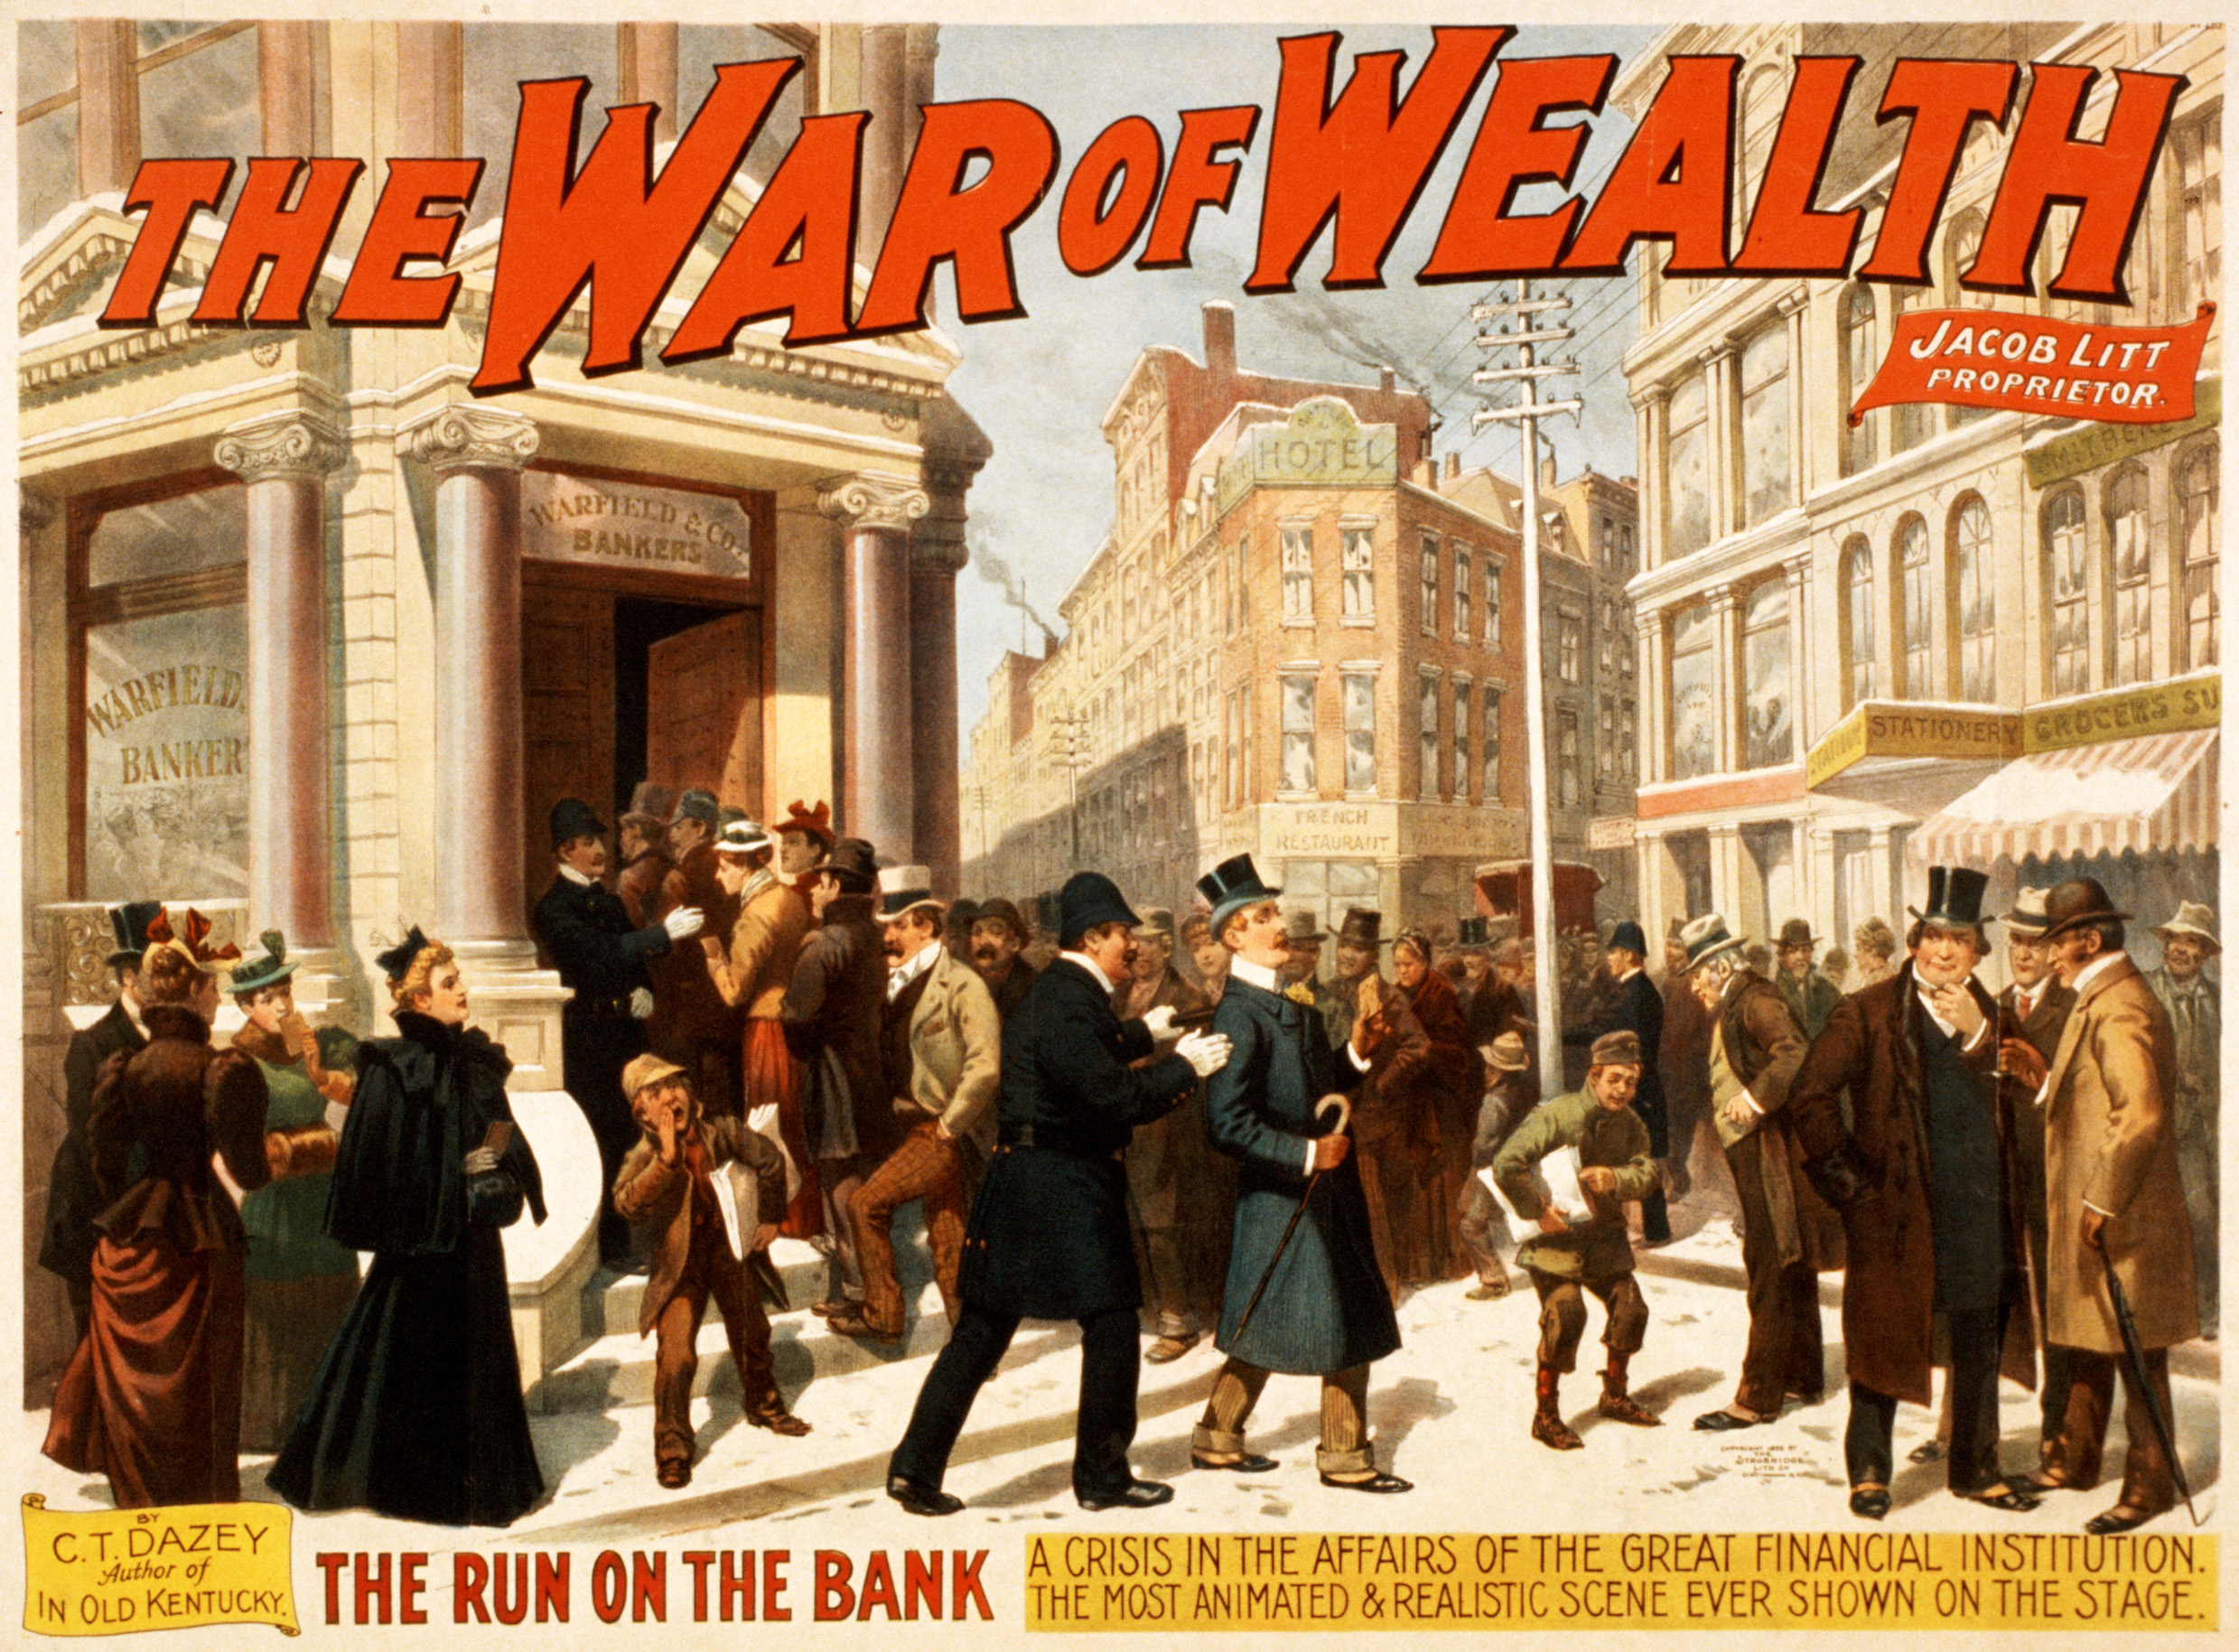 https://i0.wp.com/upload.wikimedia.org/wikipedia/commons/f/f2/War_of_wealth_bank_run_poster.jpg